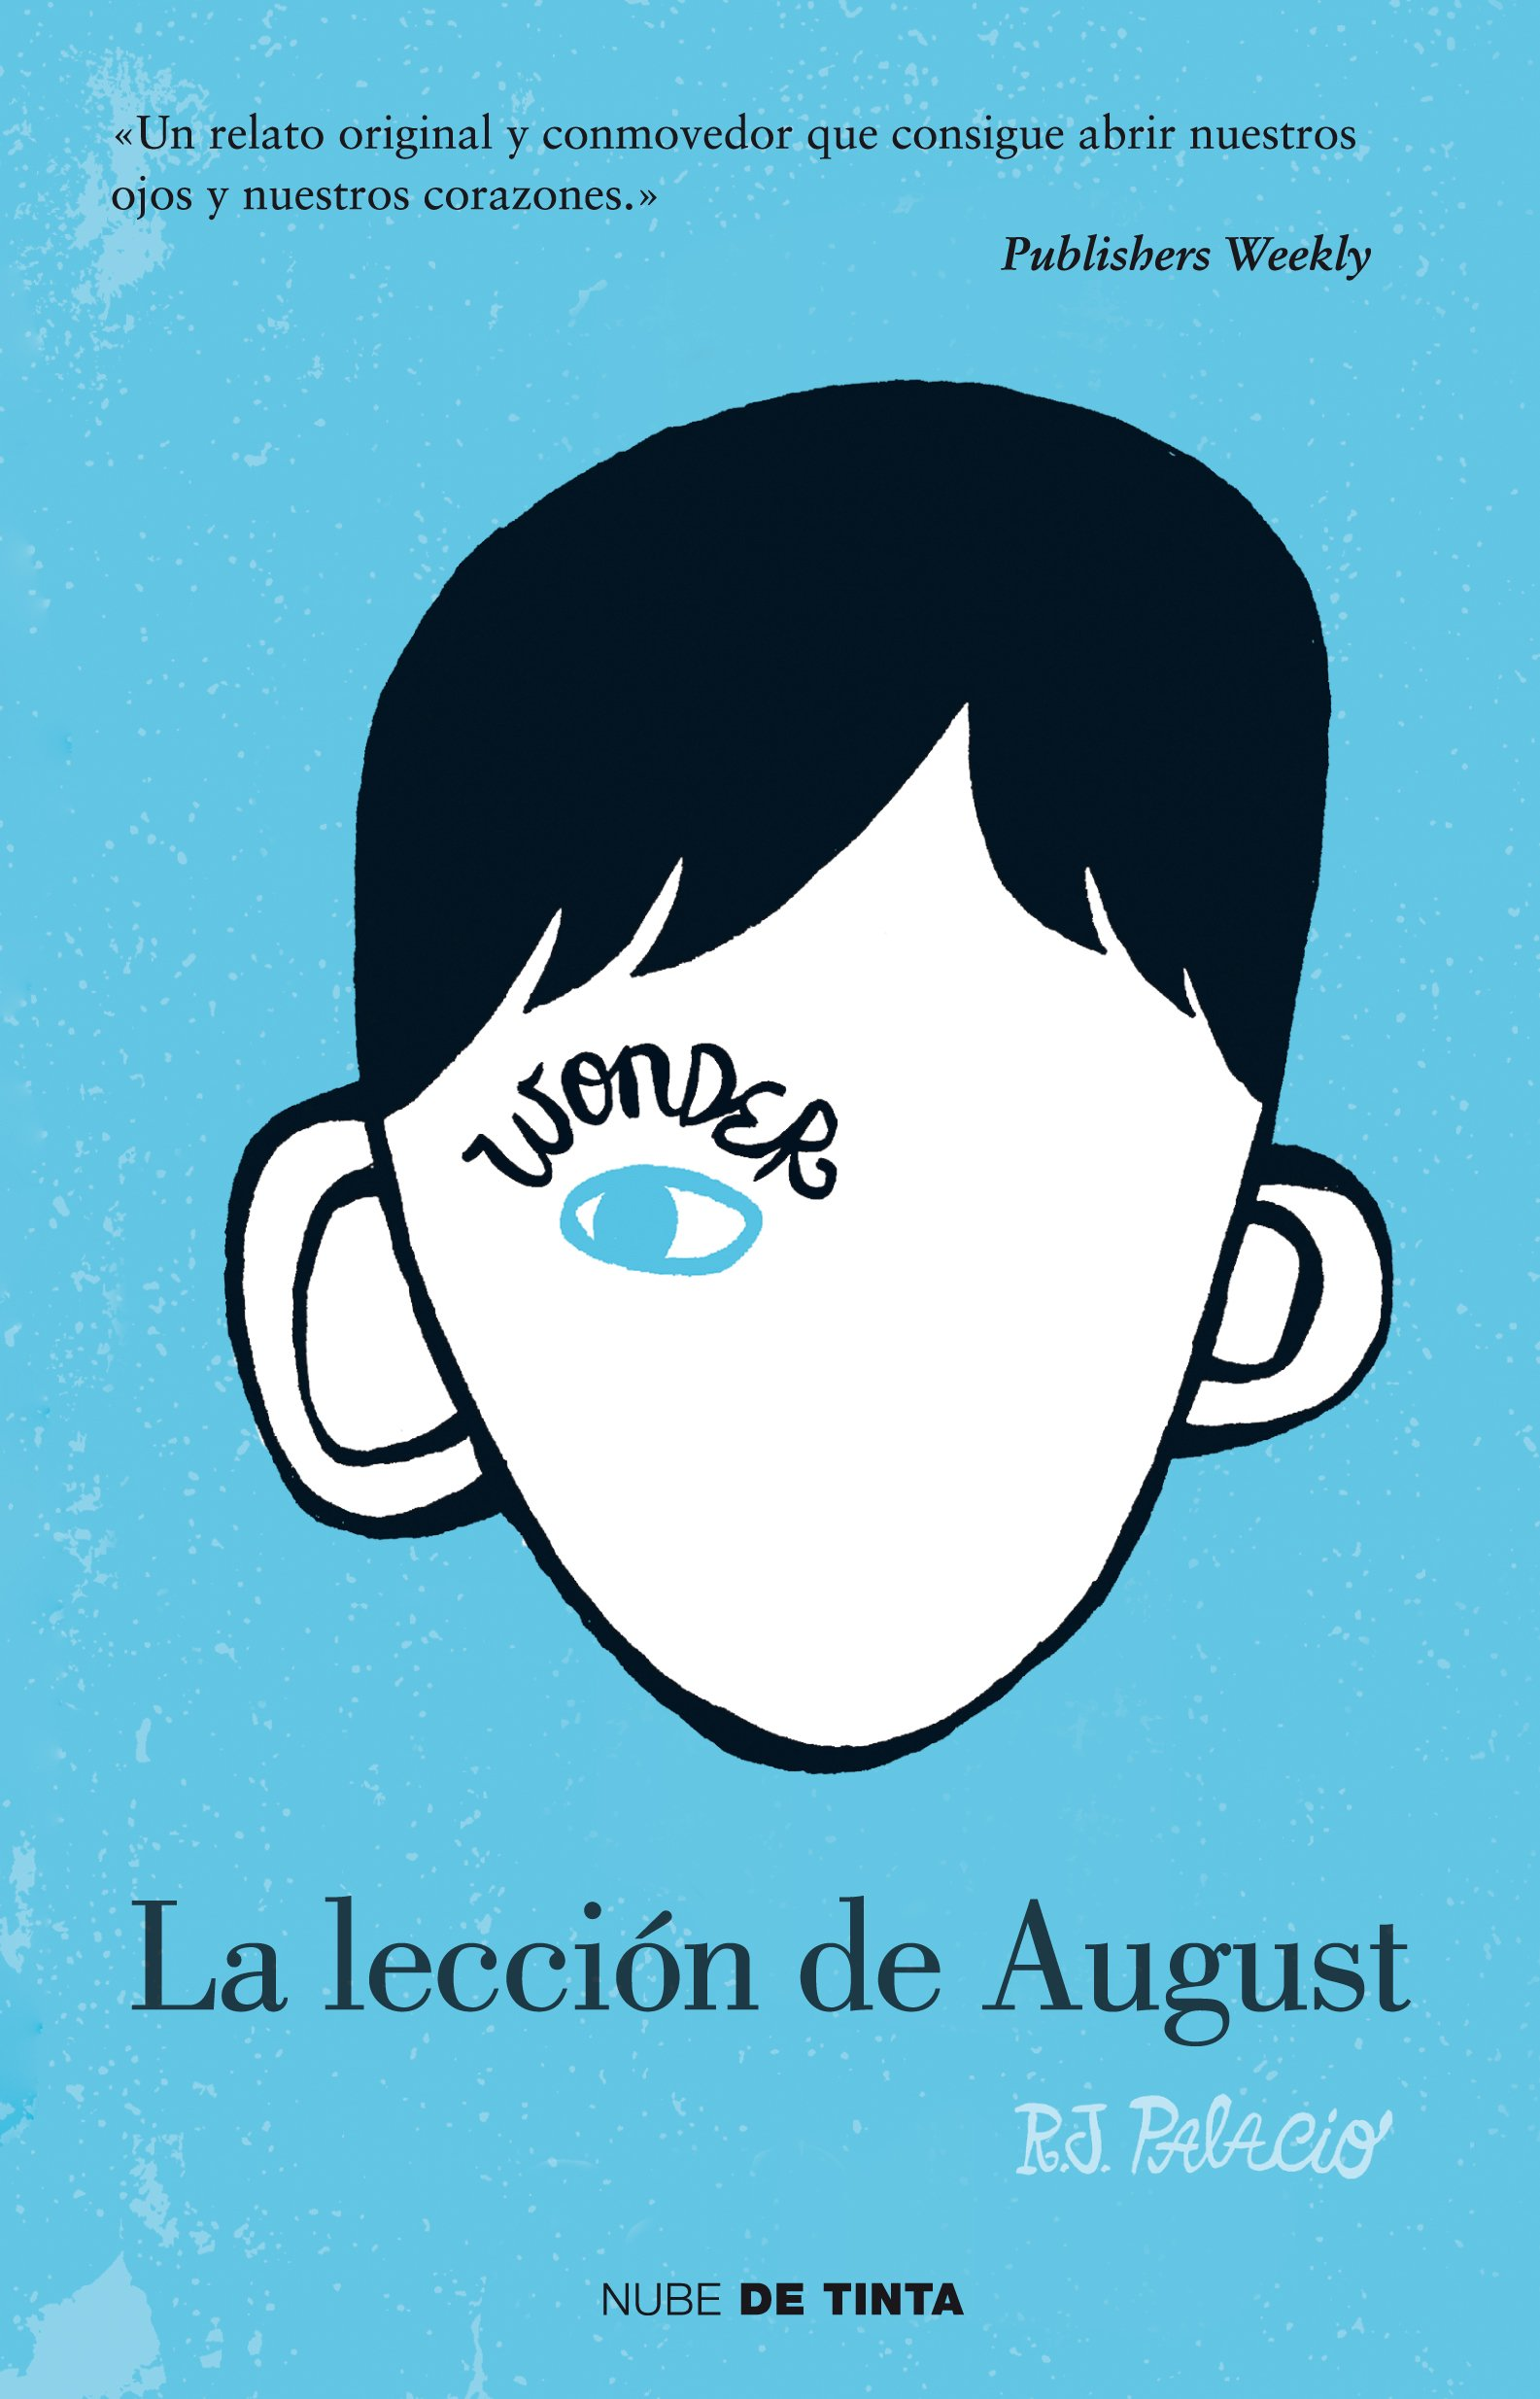 La lección de August / Wonder (Spanish Edition): R. J. Palacio: 9786073114226: Amazon.com: Books